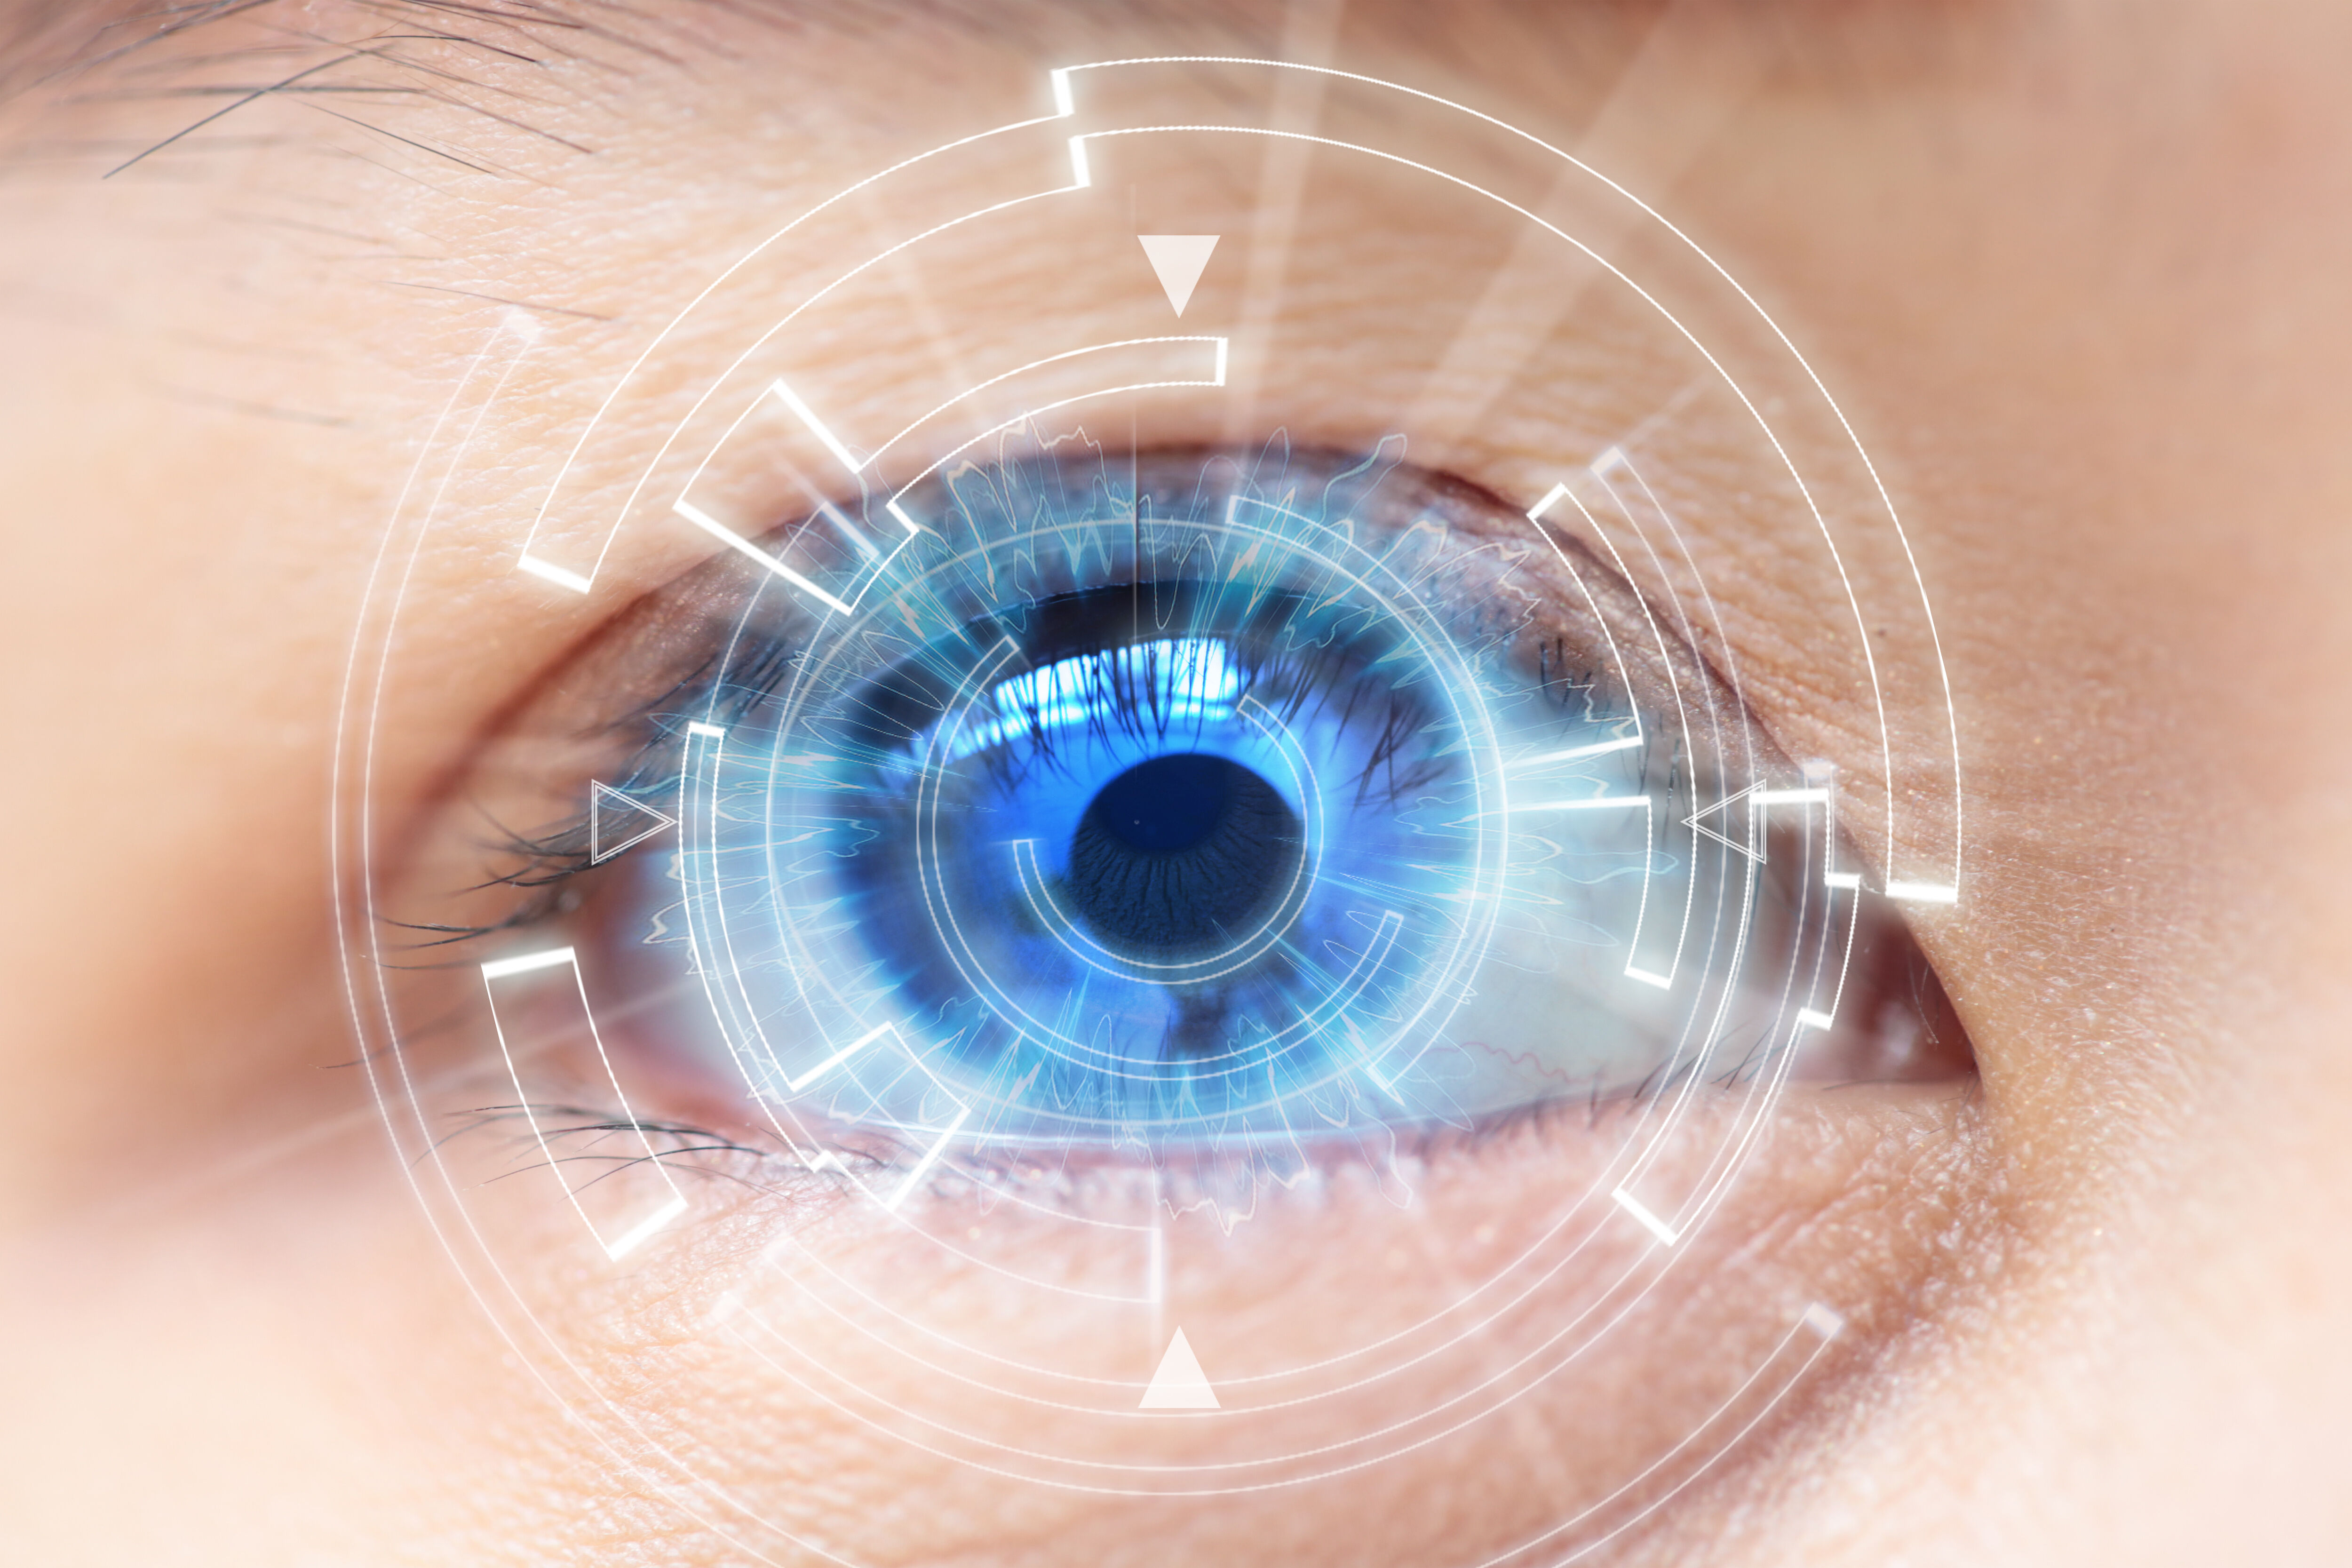 Vision correction and treatment